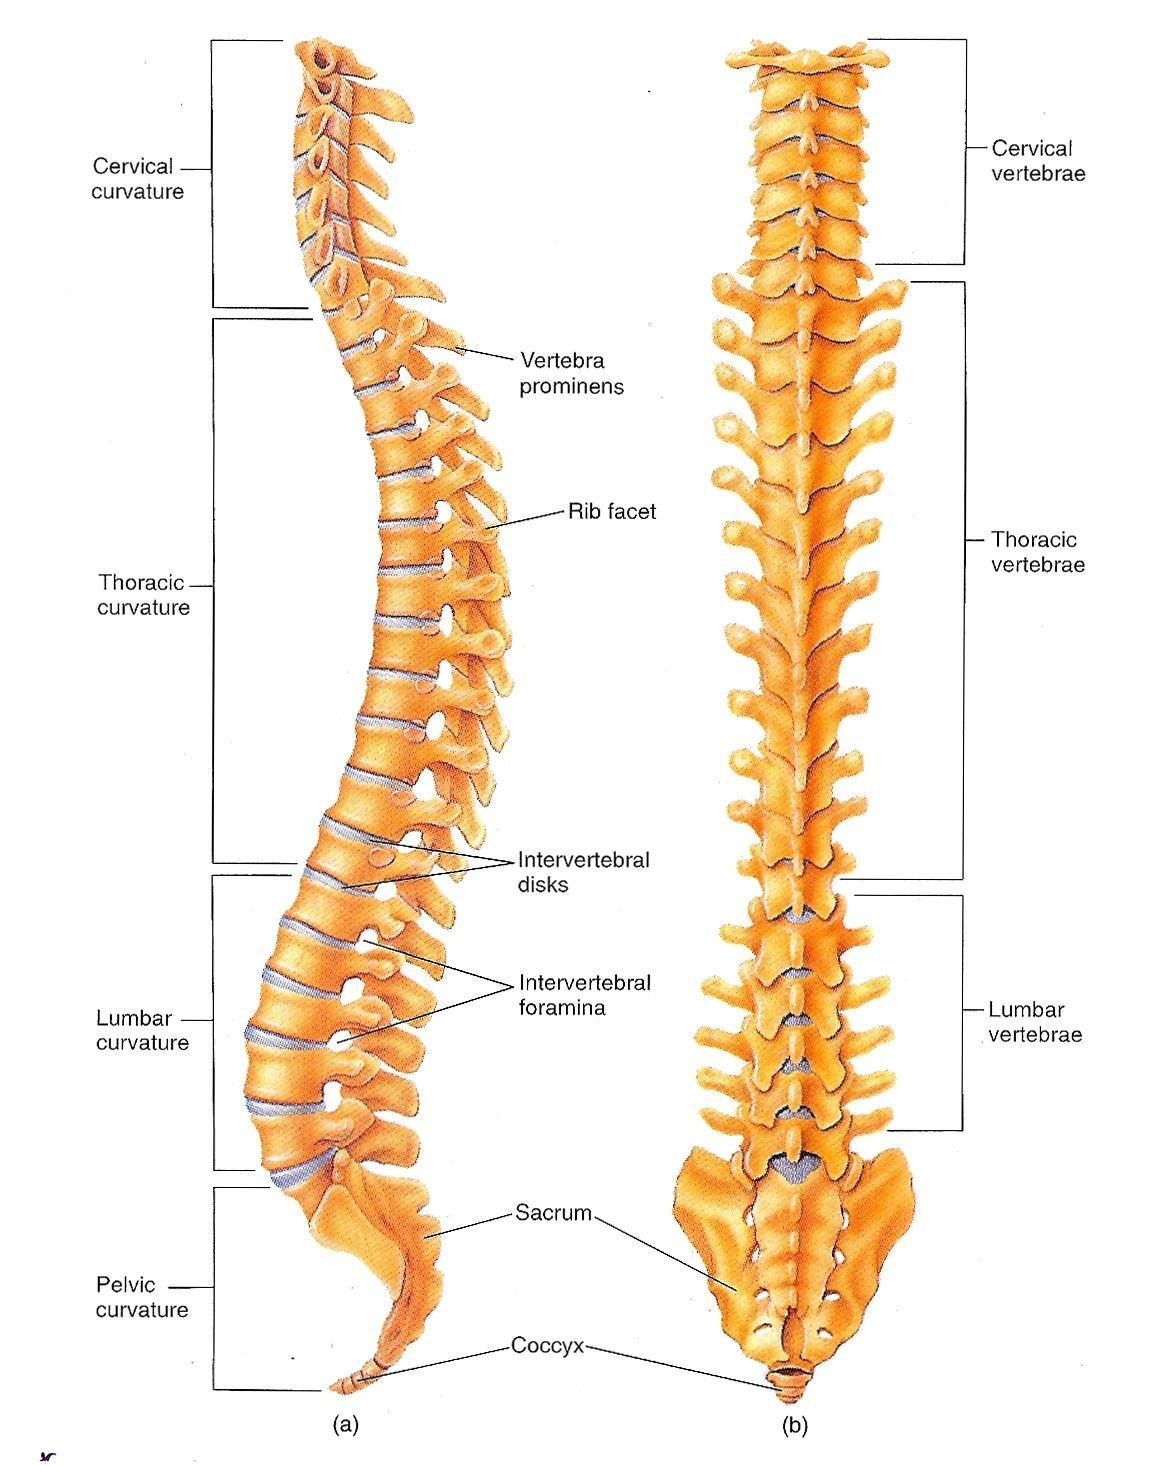 medium resolution of vertebrae pictures diagrams vertebrae pictures diagrams photos vertebral column diagram labeled anatomy and physiology